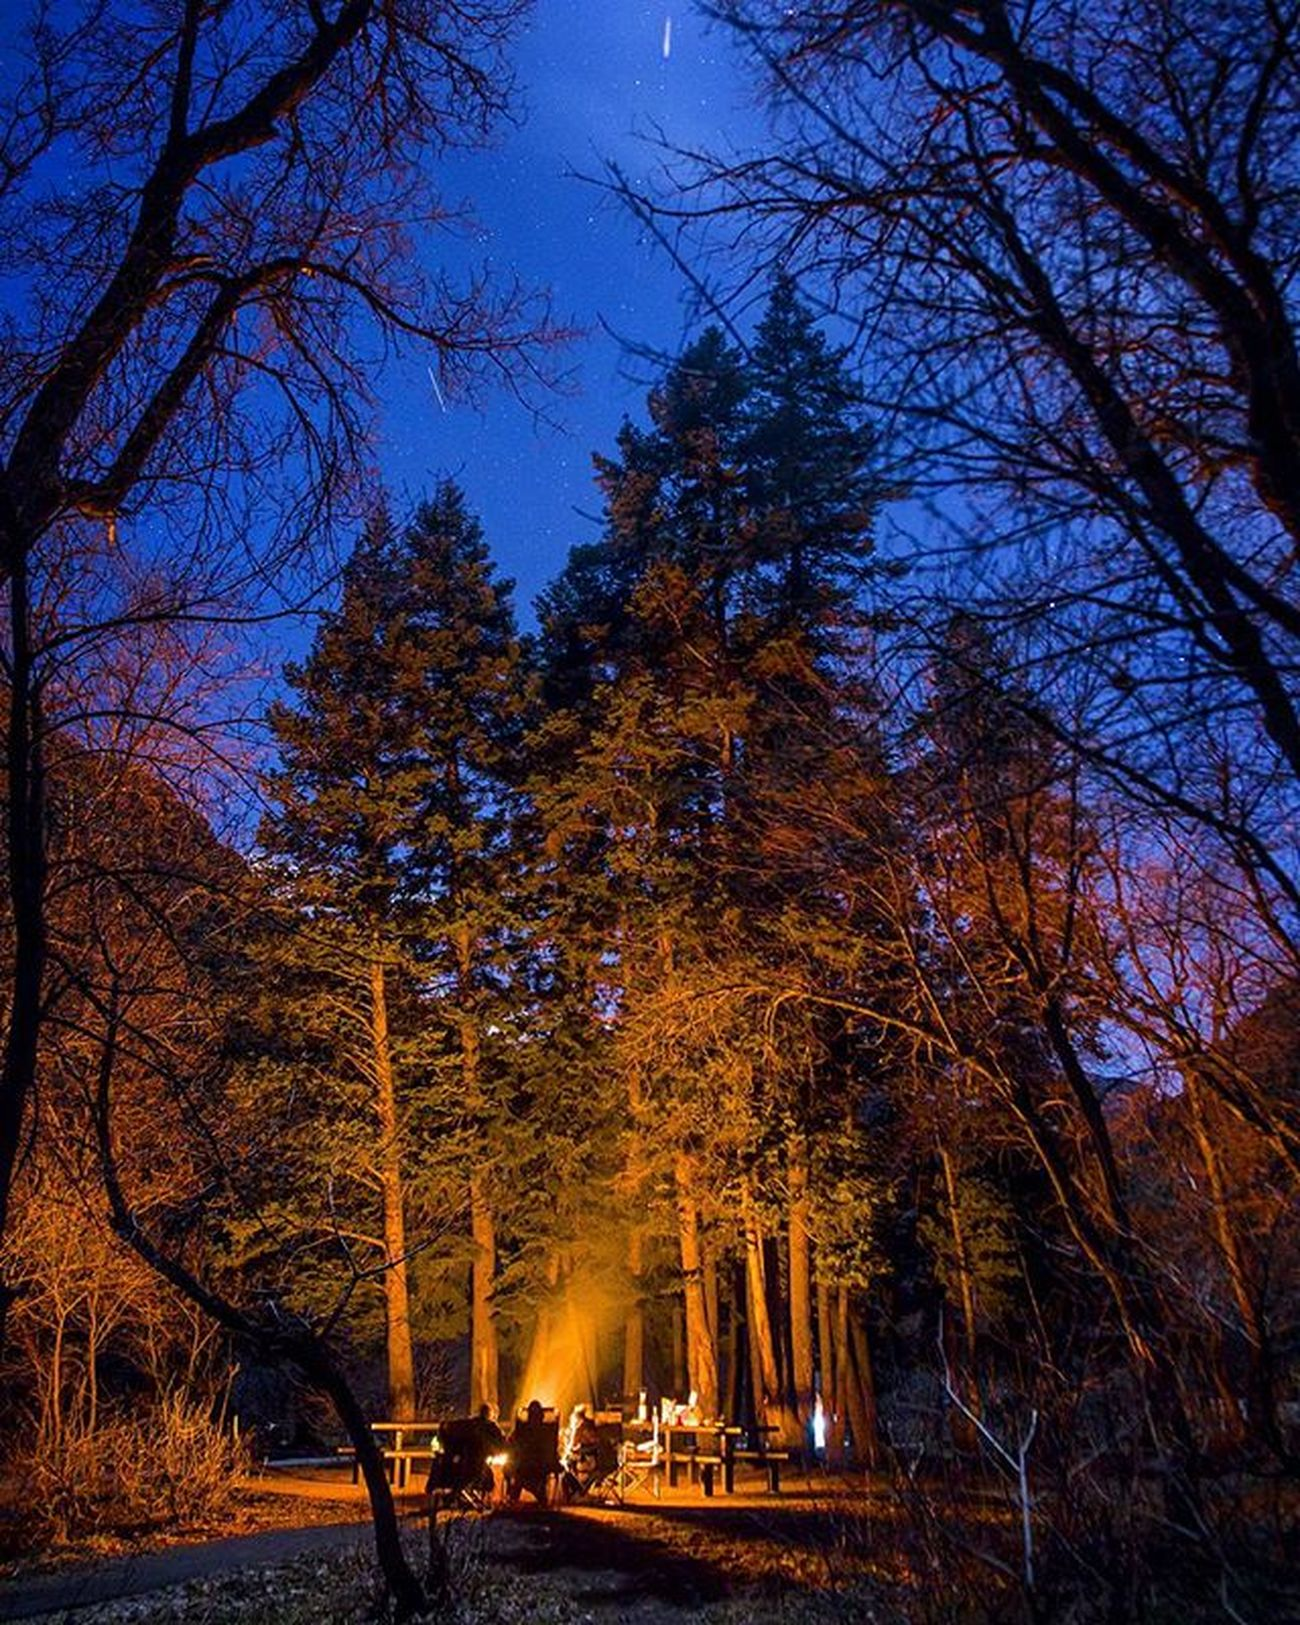 Here's to telling ghost stories under moonlit skies. My kind of Halloween party Halloween Ghoststories  Moonlight Skies Allhallowseve Campfire Campvibes Ghost Ghosthunting Halloweenparty Weekend Americanforkcanyon Fallnightsarethebest Campvibes